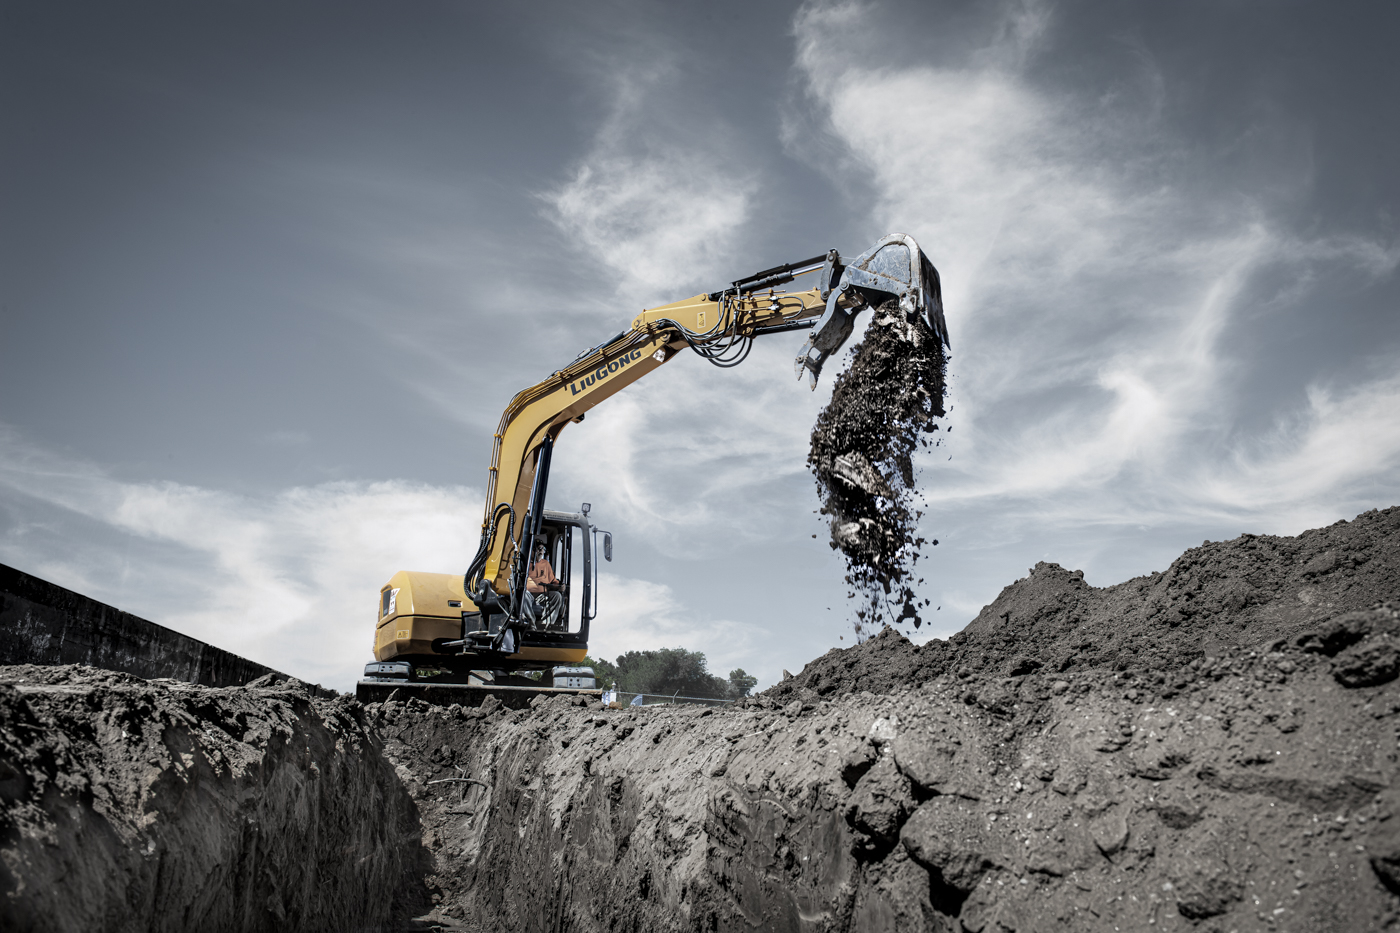 LuiGong Excavator photographed during a construction job.